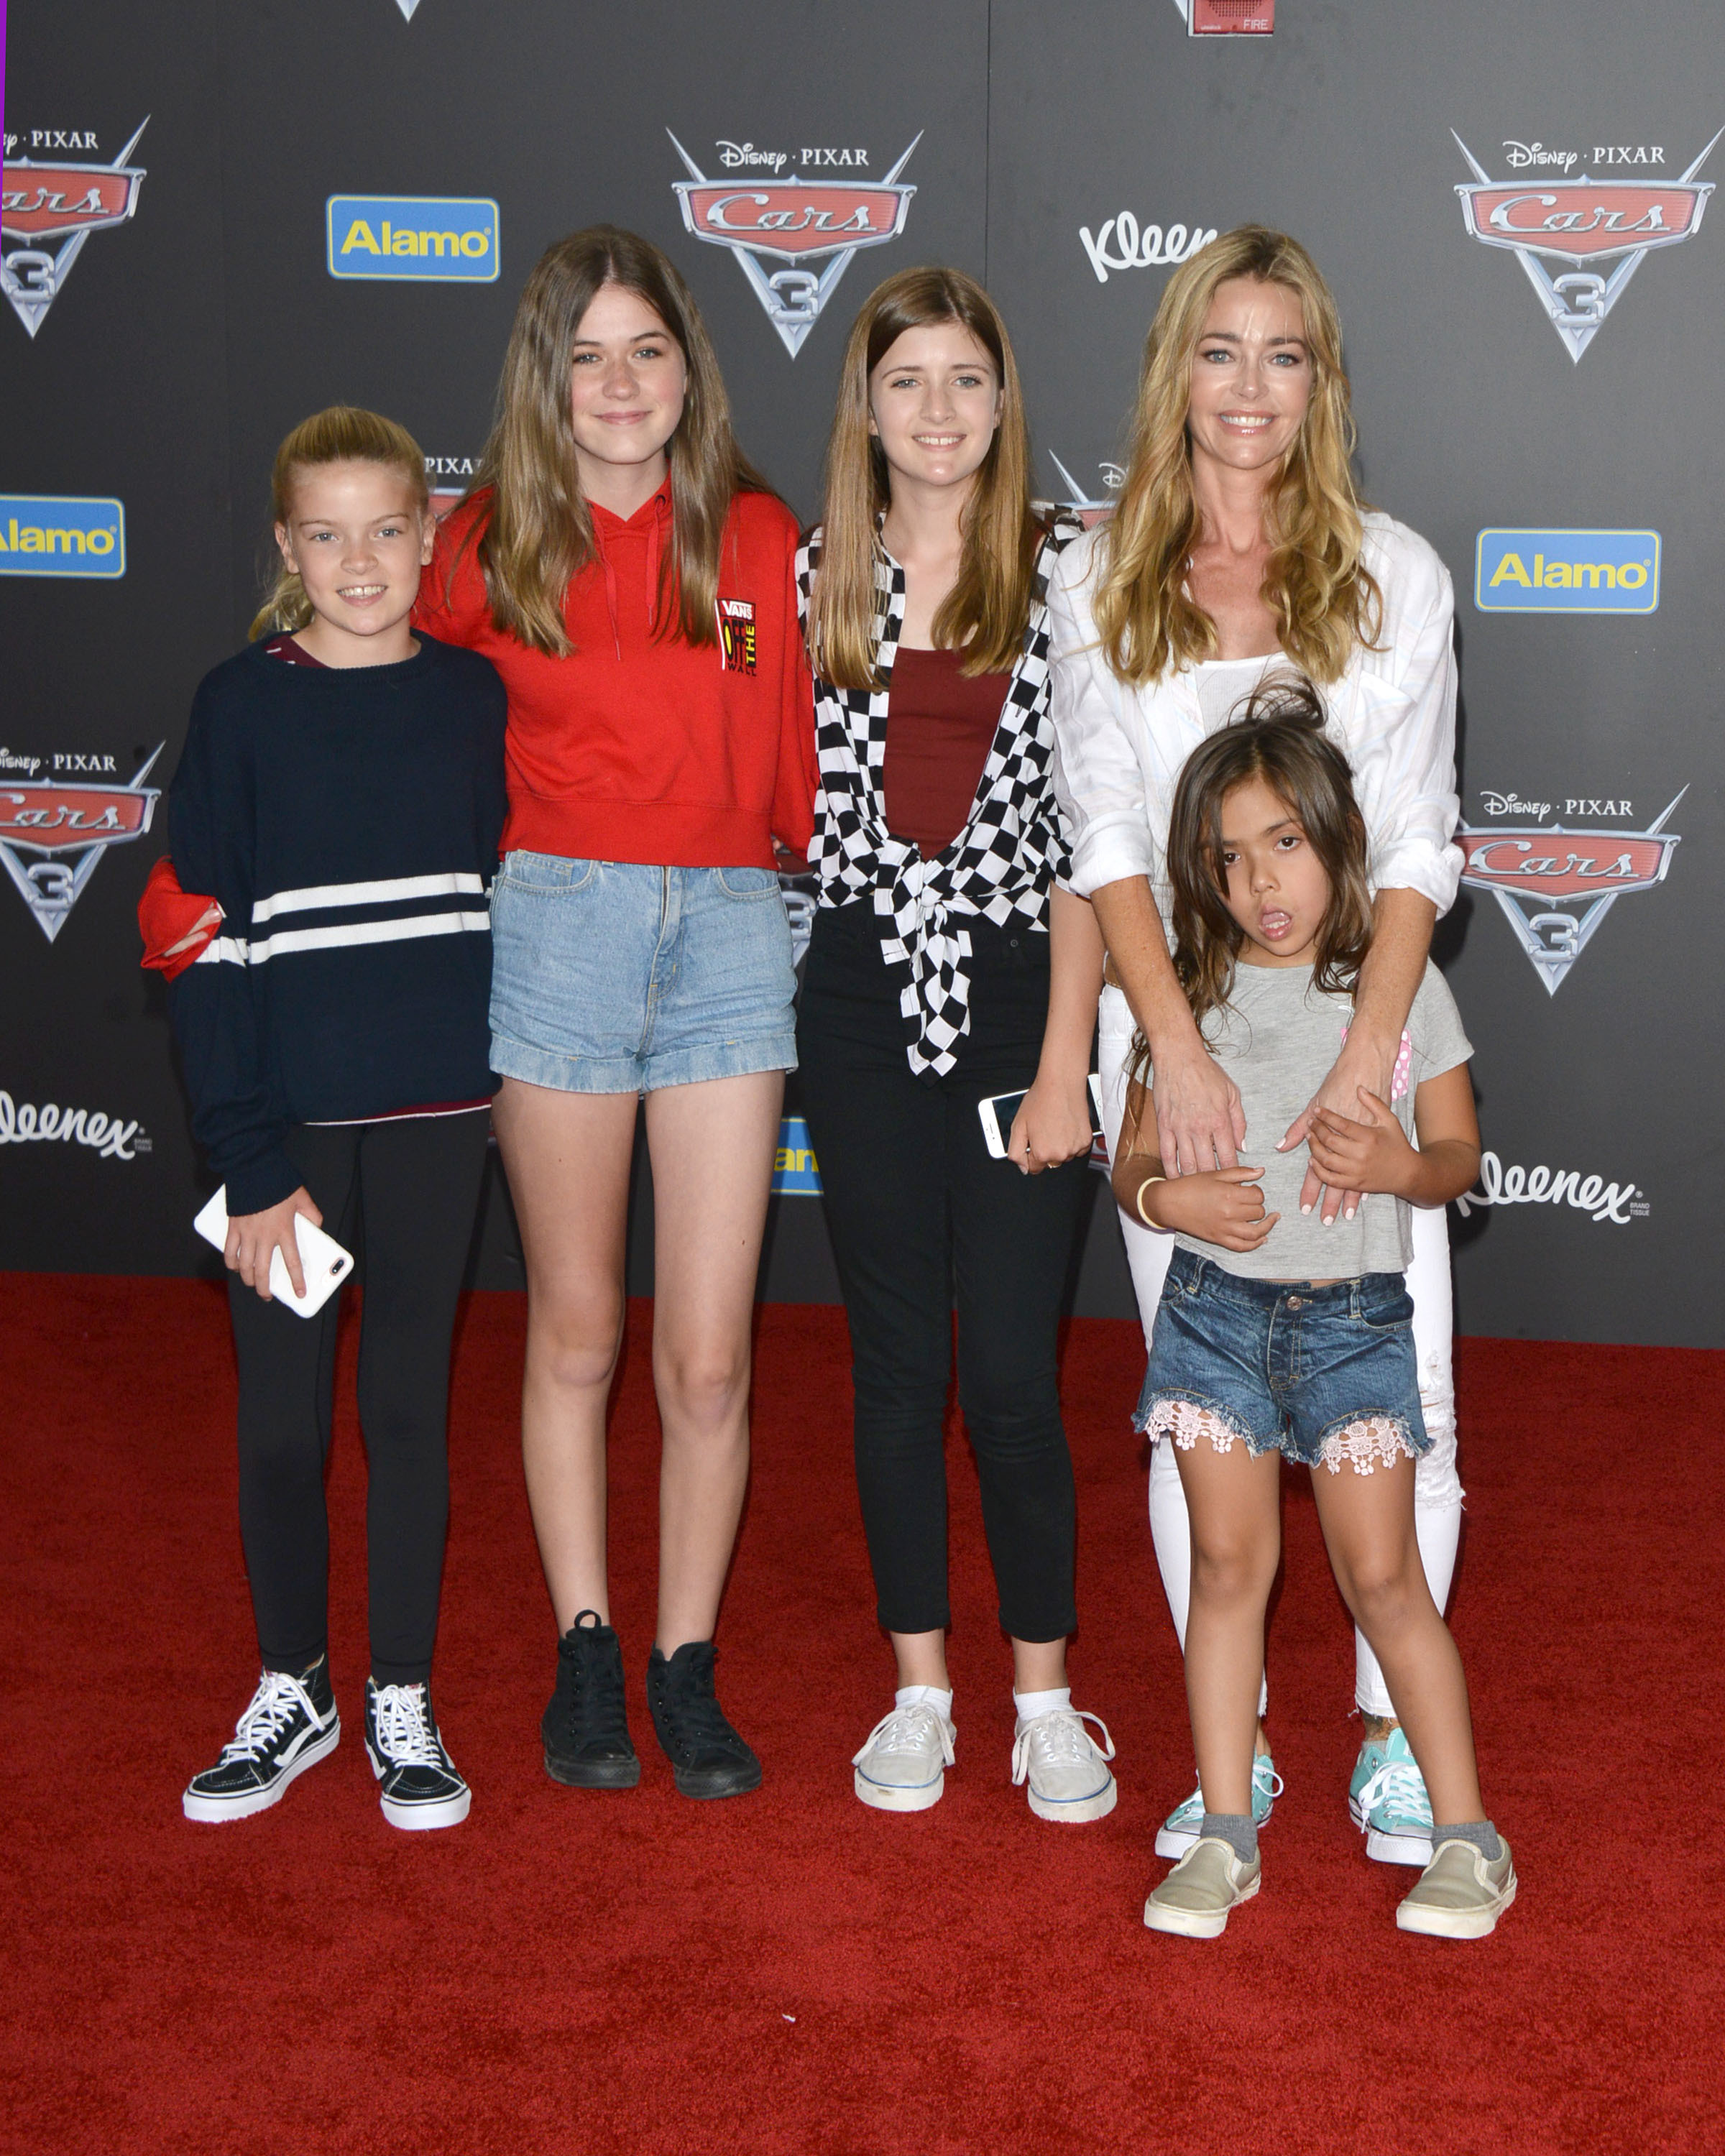 """Lola Sheen, a friend, Sam Sheen, Denise Richards and Eloise Richards attend the world premiere of Disney and Pixar's """"Cars 3"""" at the Anaheim Convention Center in Anaheim, California, on June 10, 2017."""